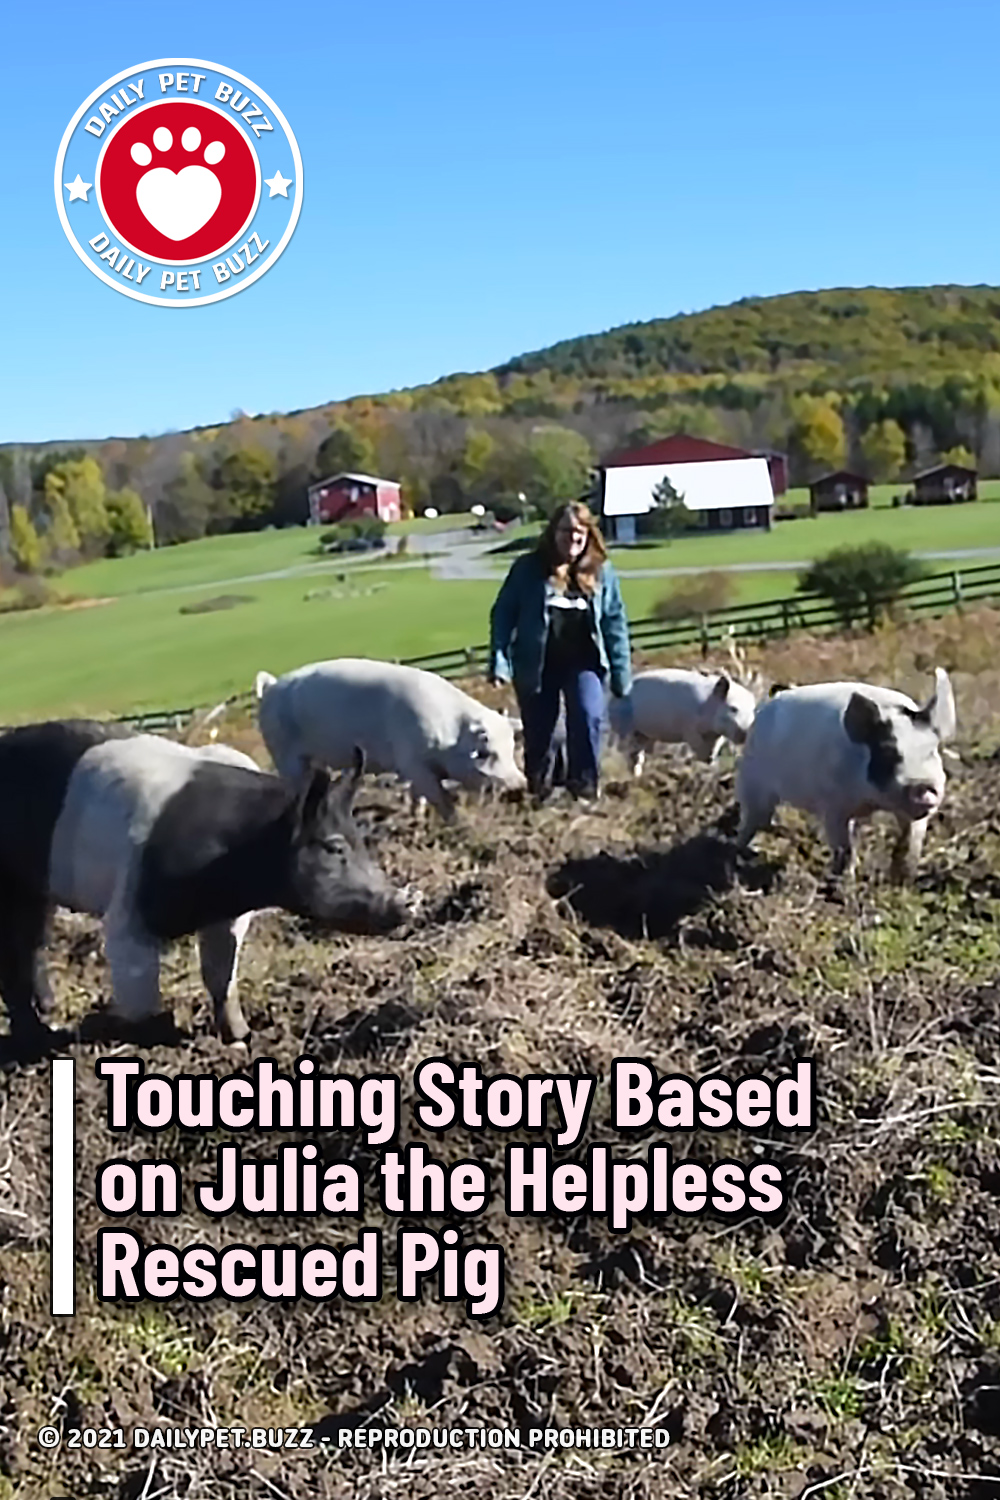 Touching Story Based on Julia the Helpless Rescued Pig